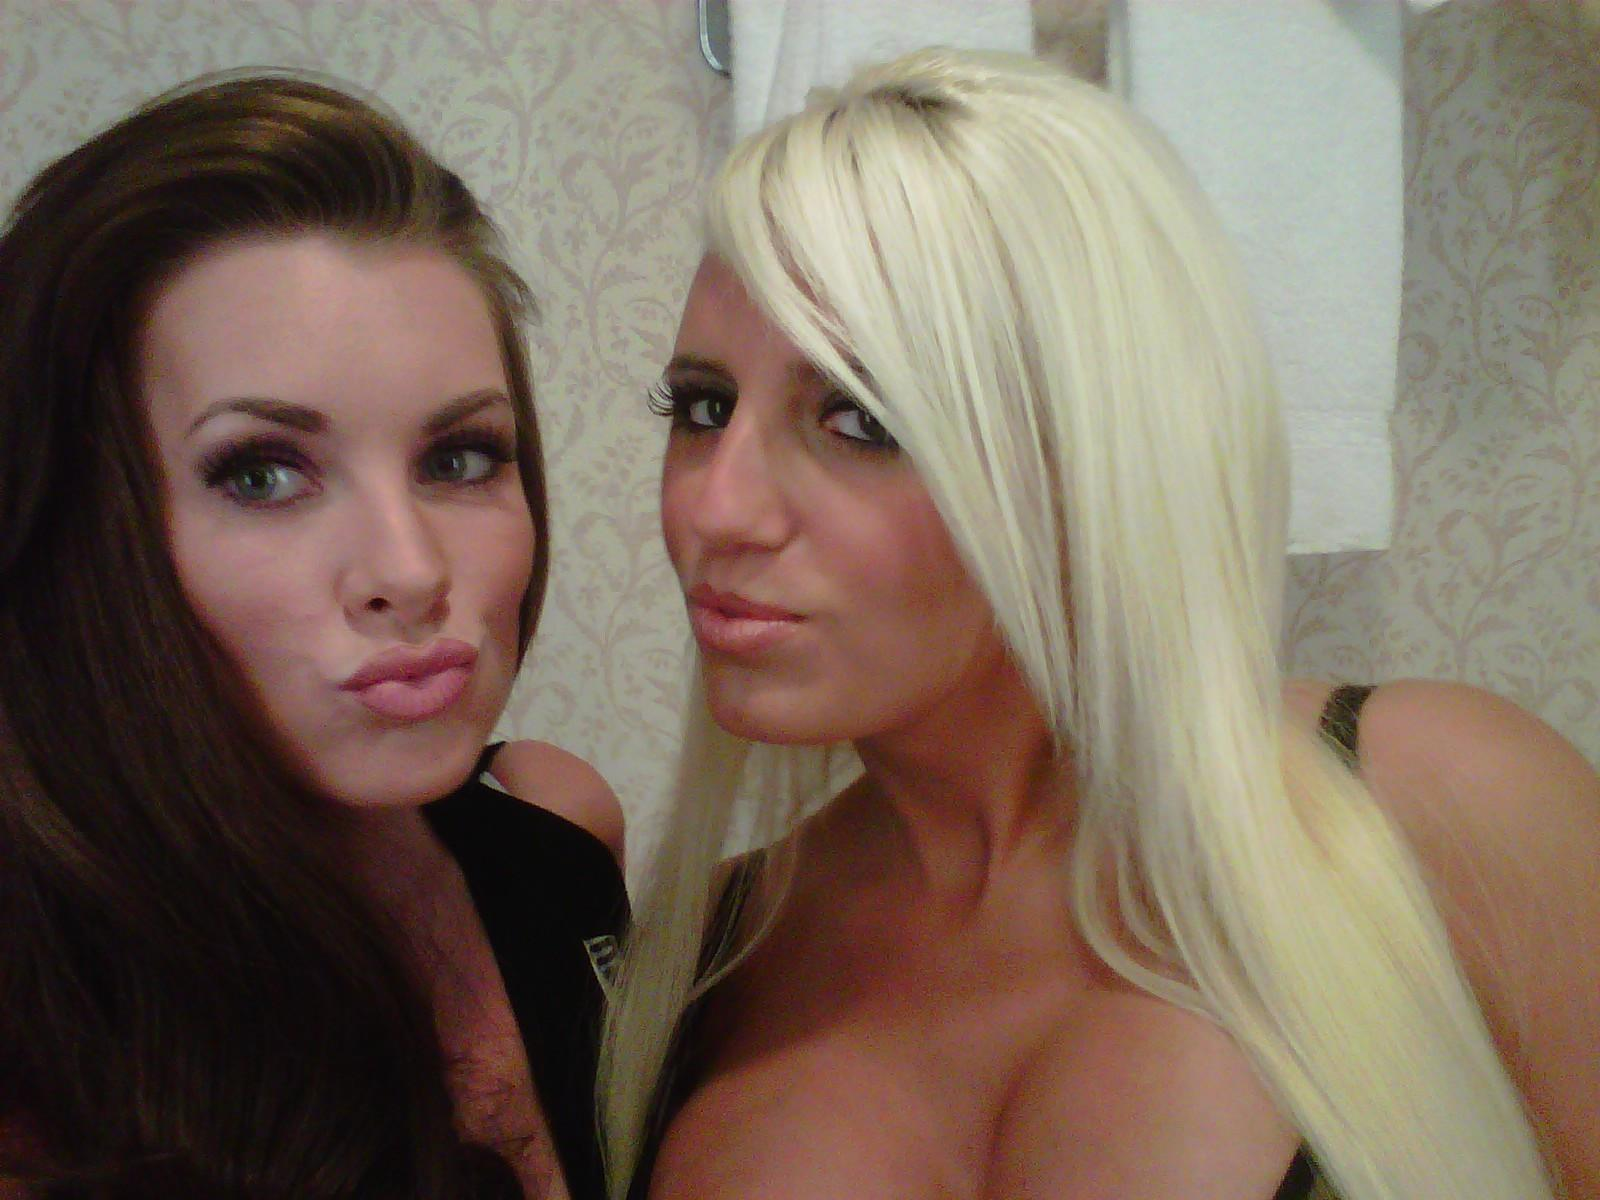 Baltimore Female Strippers For Bachelor Parties